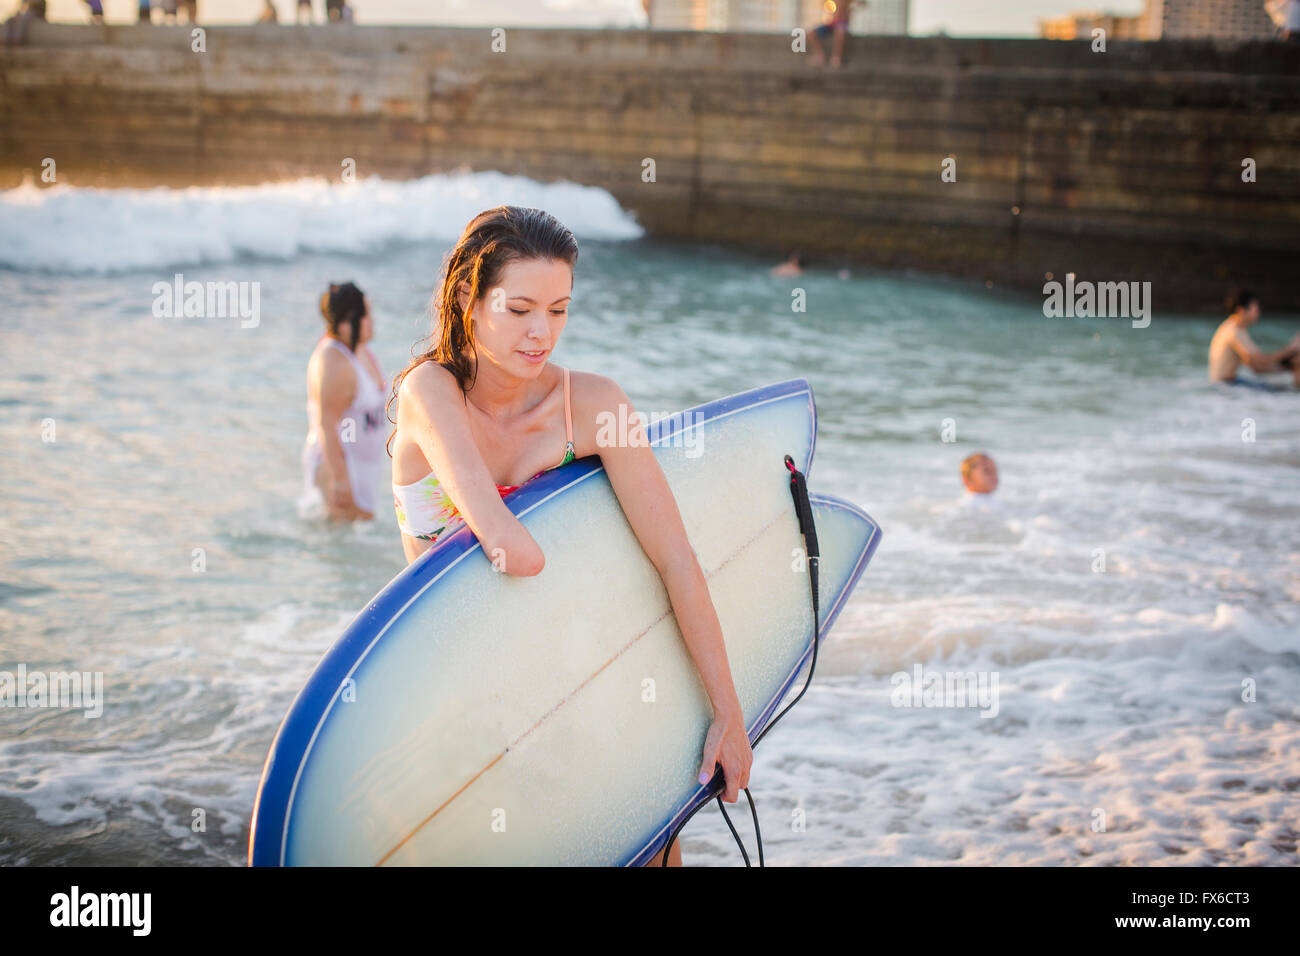 Mixed Race amputee transportant surfboard on beach Banque D'Images